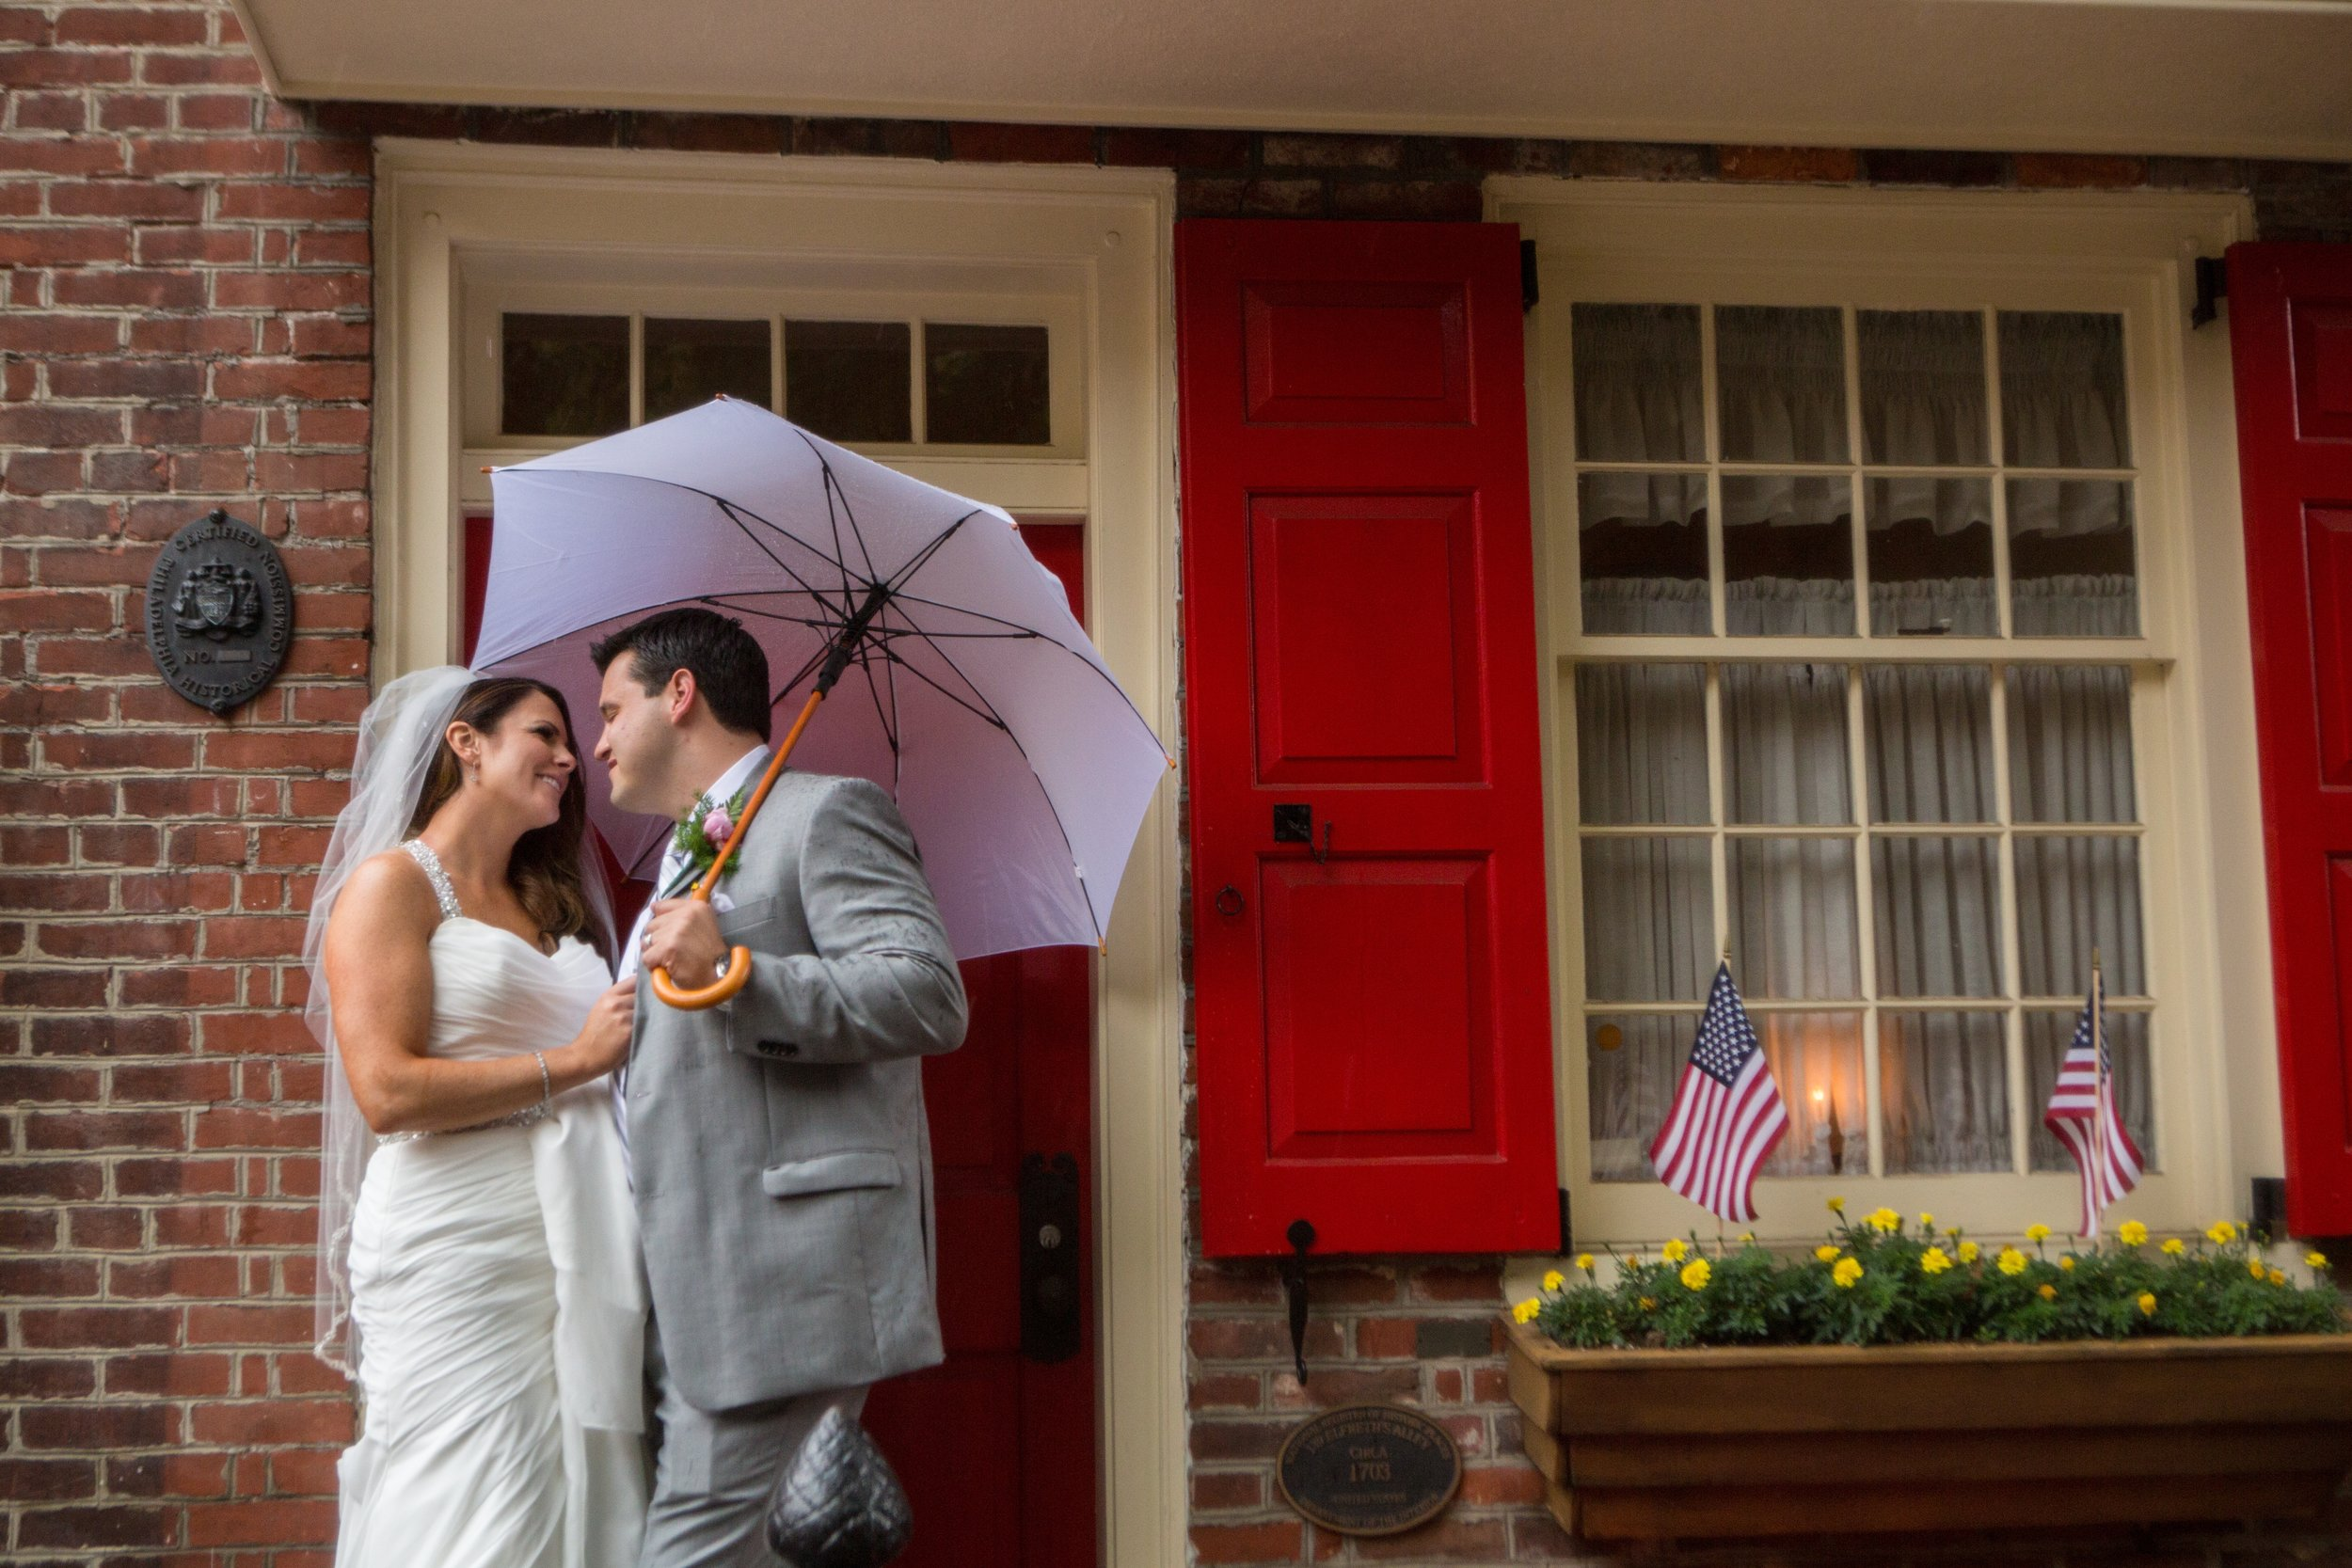 Kate and Jeff visit the quaint and cozy Elfreth's Alley.